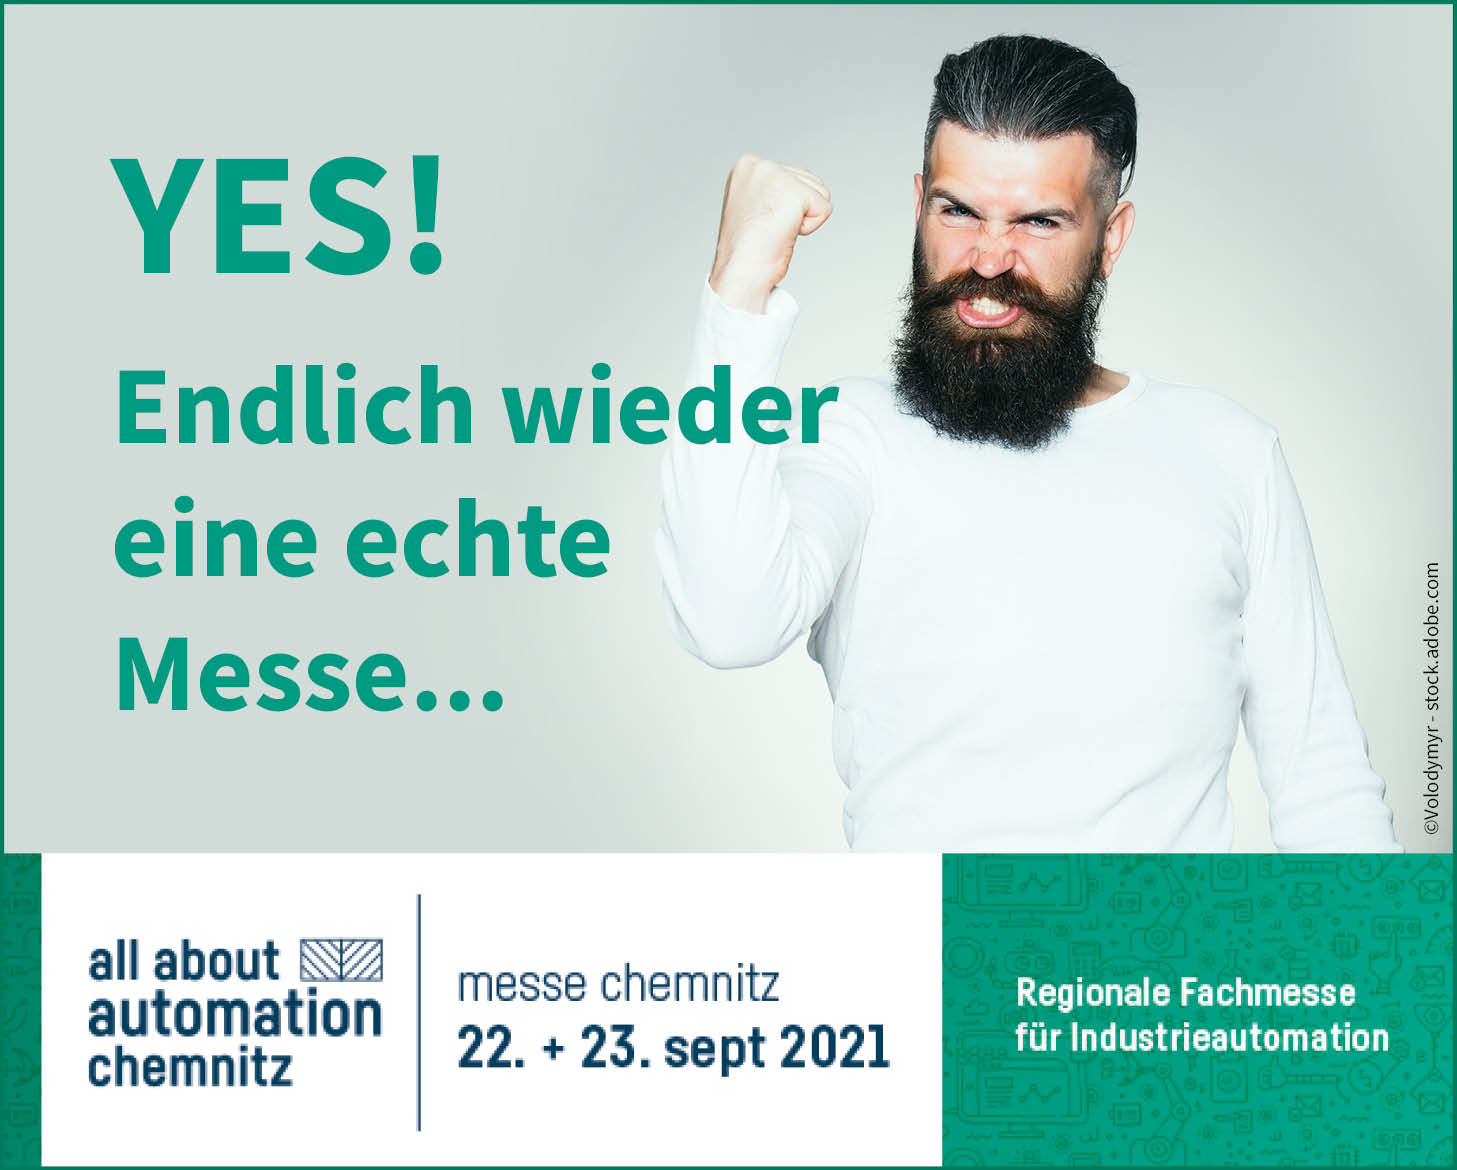 Fachmesse all about automation 2021 in Chemnitz